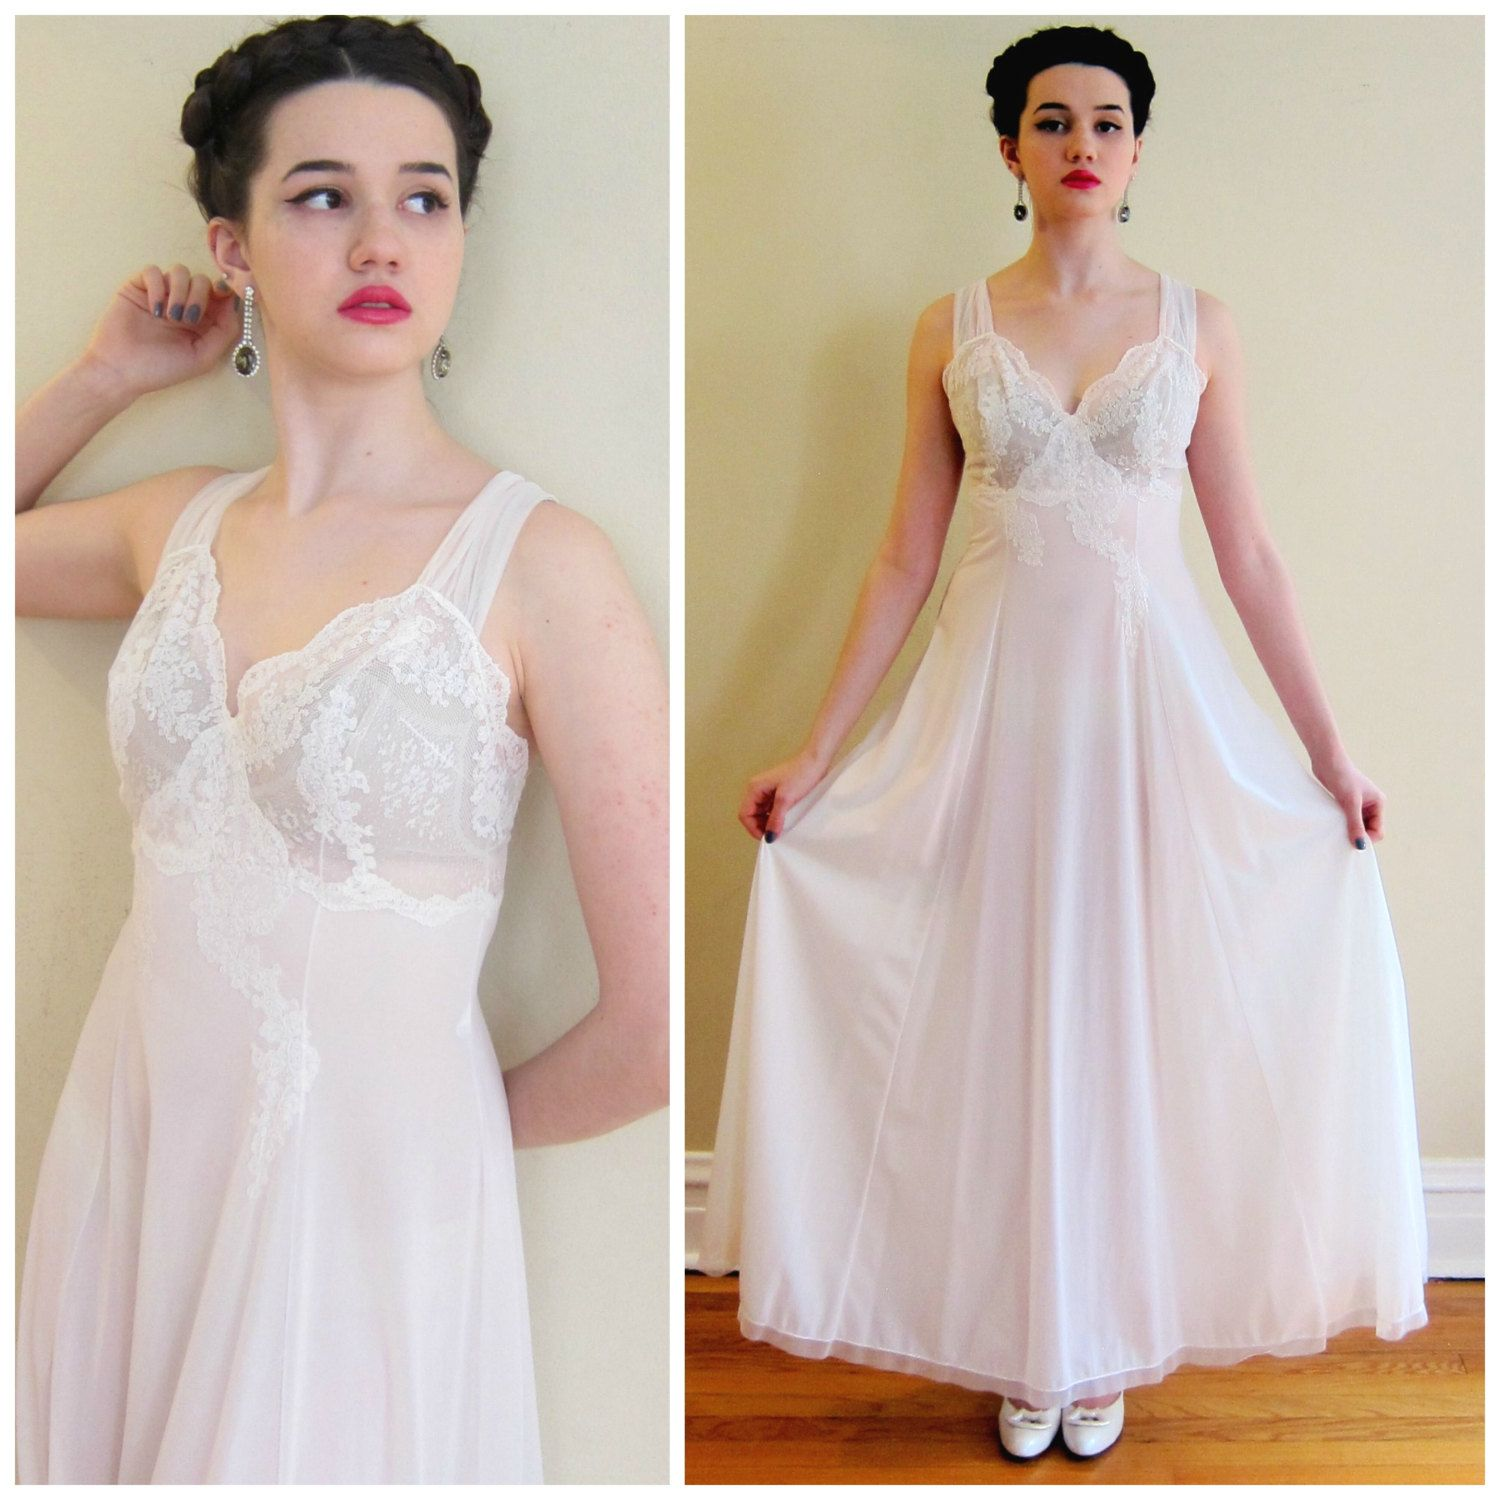 Vintage 1940s White Lace Negligee Nightgown 40s Slip